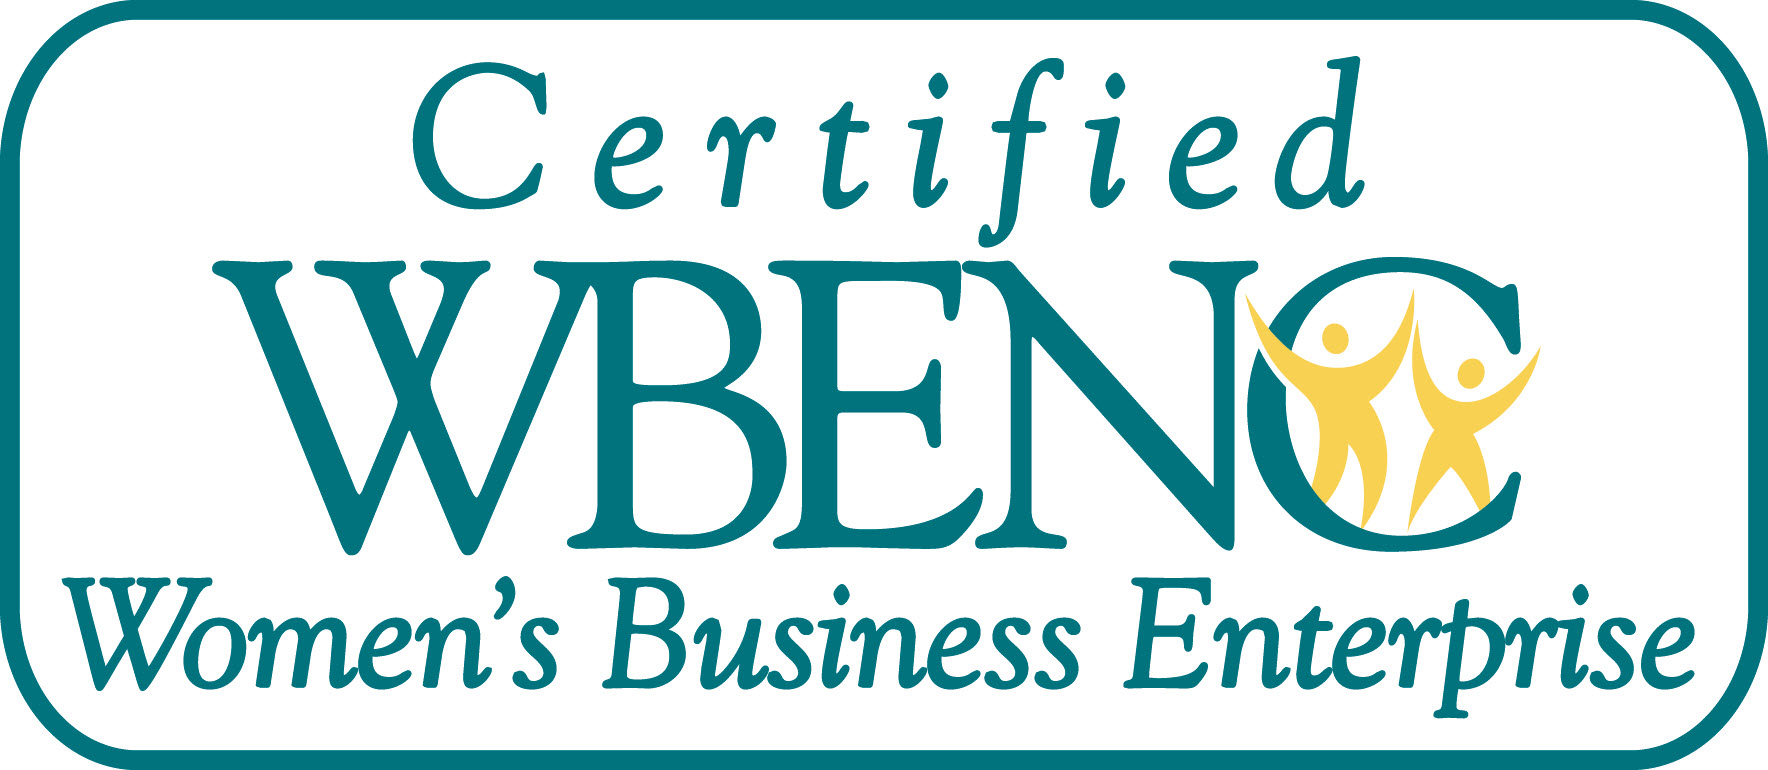 Wbegovernment contracting krall contracting inc in addition we are verified as a small diverse business sdb and recently received national re certification xflitez Gallery